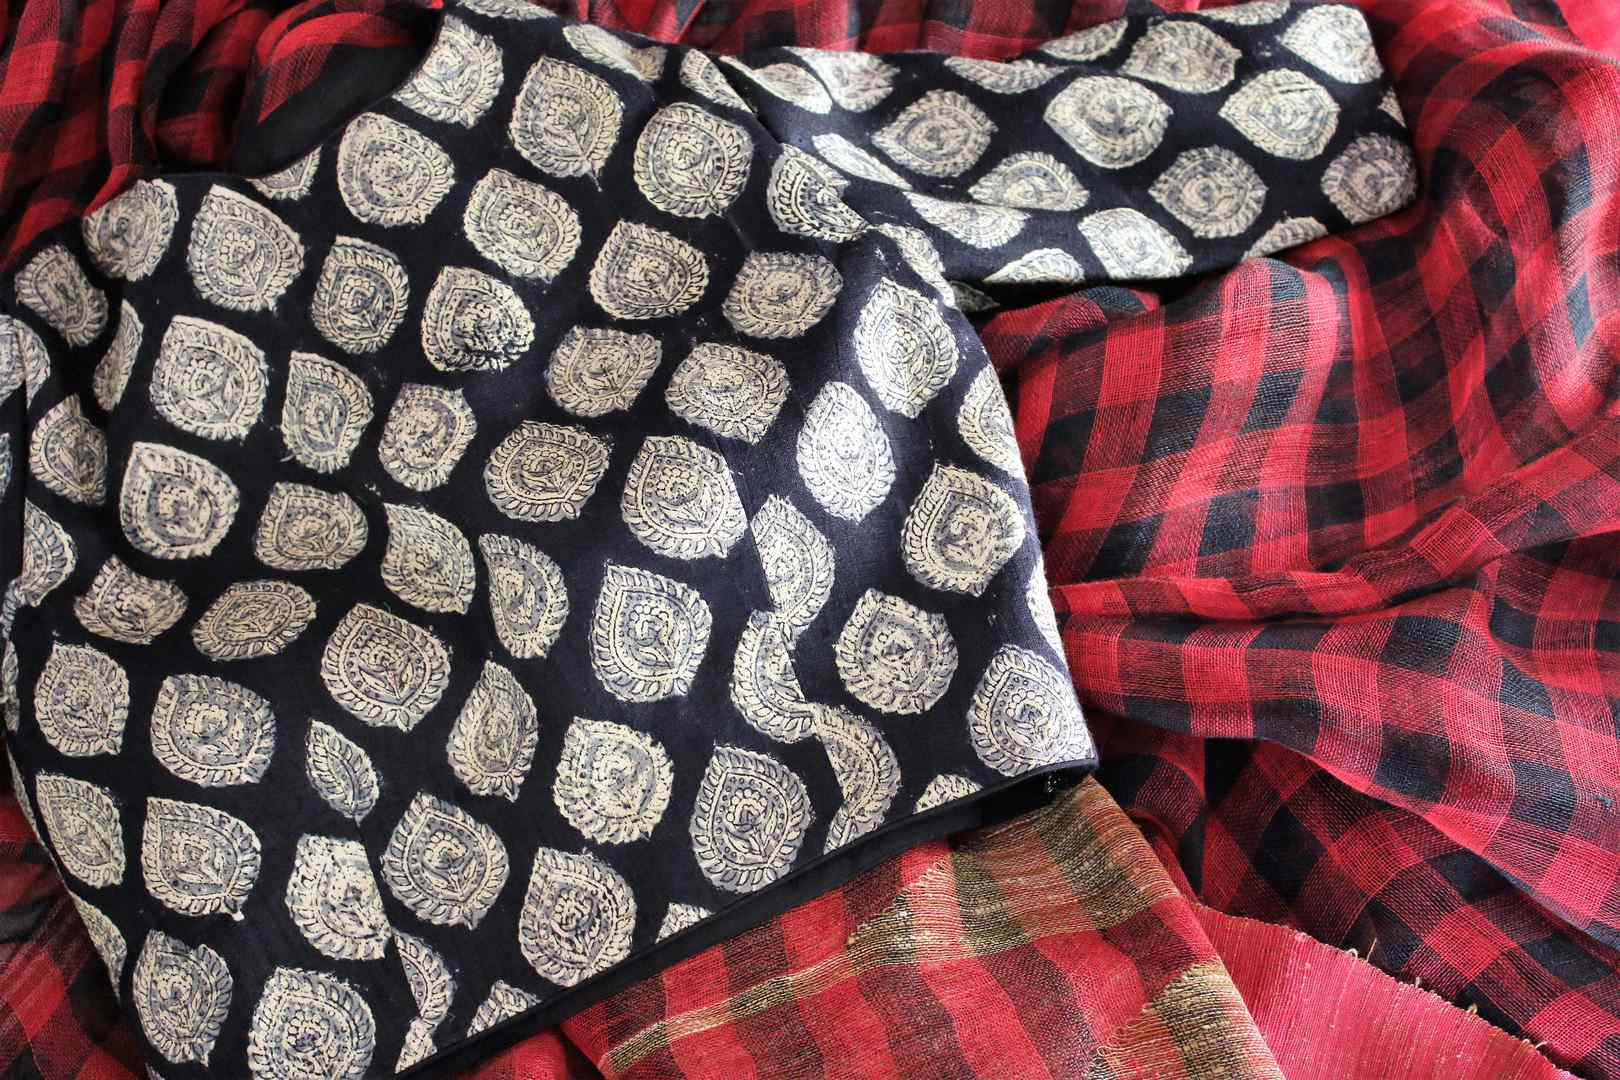 Shop red and black check linen saree online in USA with a printed blouse. Bring a touch of tradition to your Indian look with an exquisite range Indian handloom saris, pure linen sarees available at Pure Elegance Indian fashion store in USA or shop online.-details